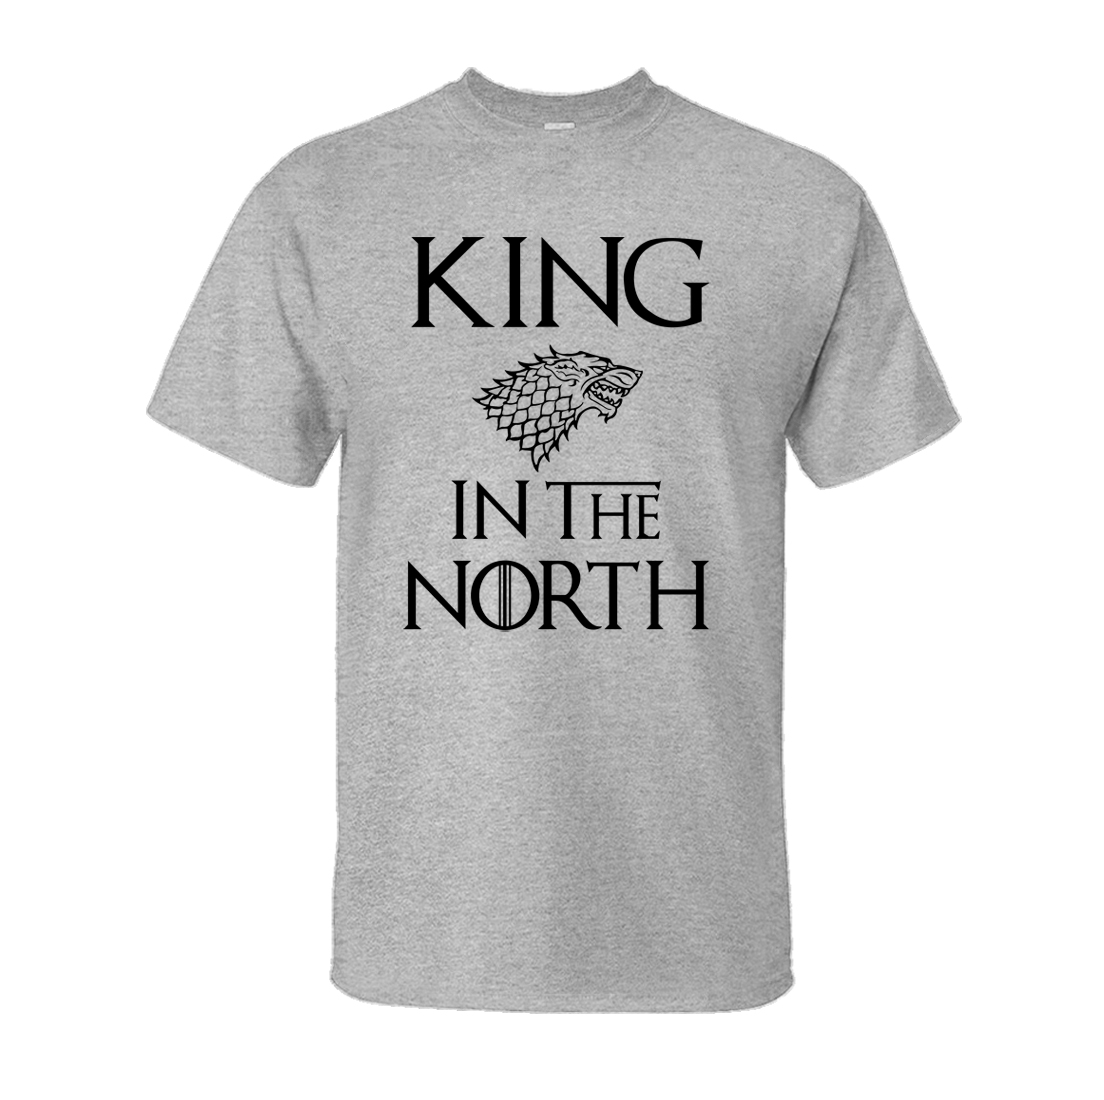 ALI shop ...  ... 33023564968 ... 3 ... Game Of Thrones King In The North T Shirt Men 2019 Summer Funny T-shirts TV Show Short Sleeve Shirt Hip Hop Streetwear BZ0101 ...